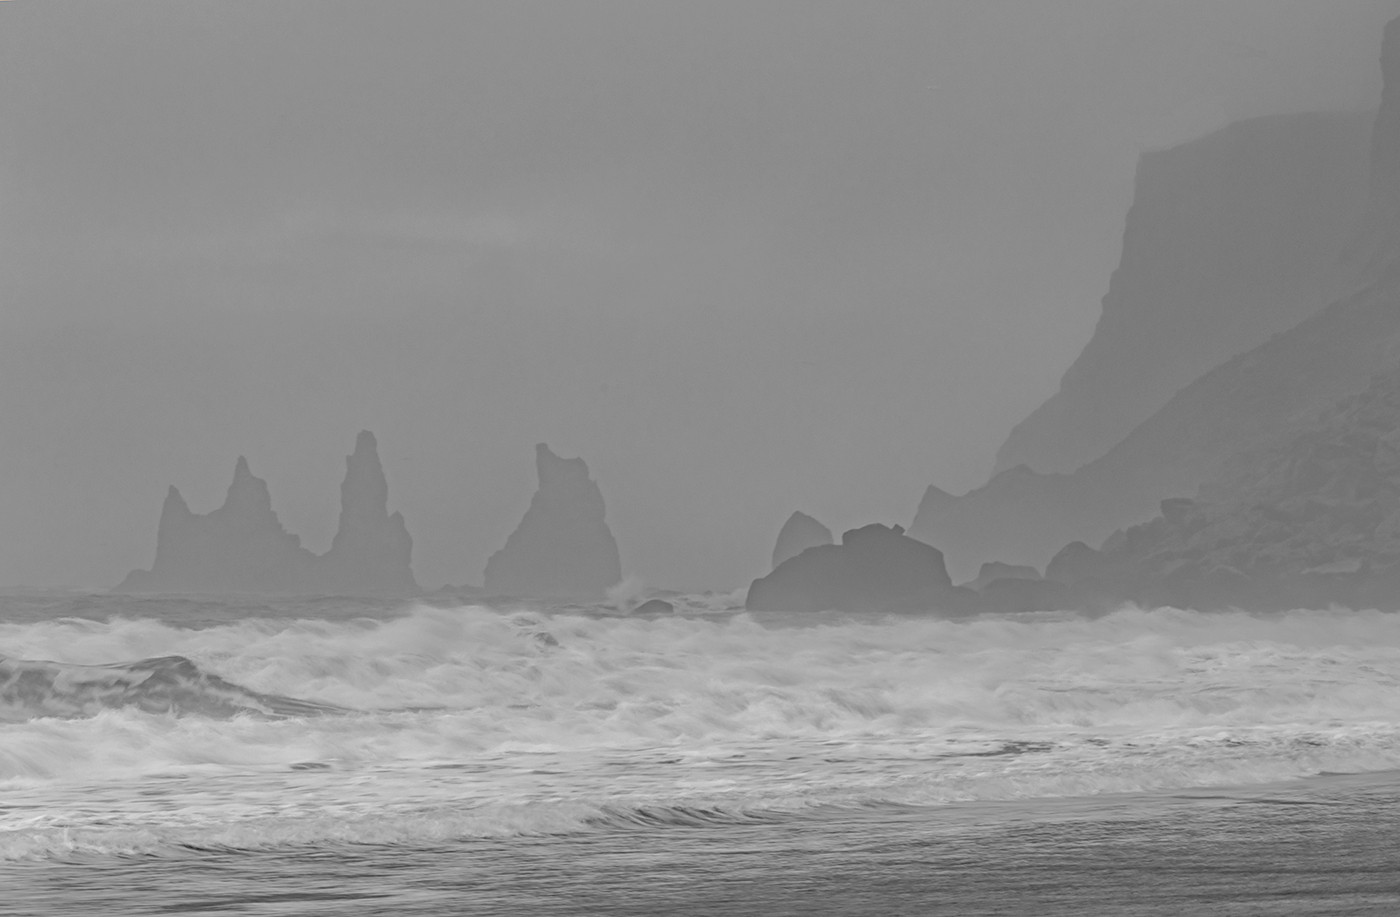 MONO - Foggy Morning by Wendy Shaw (4.5 marks)